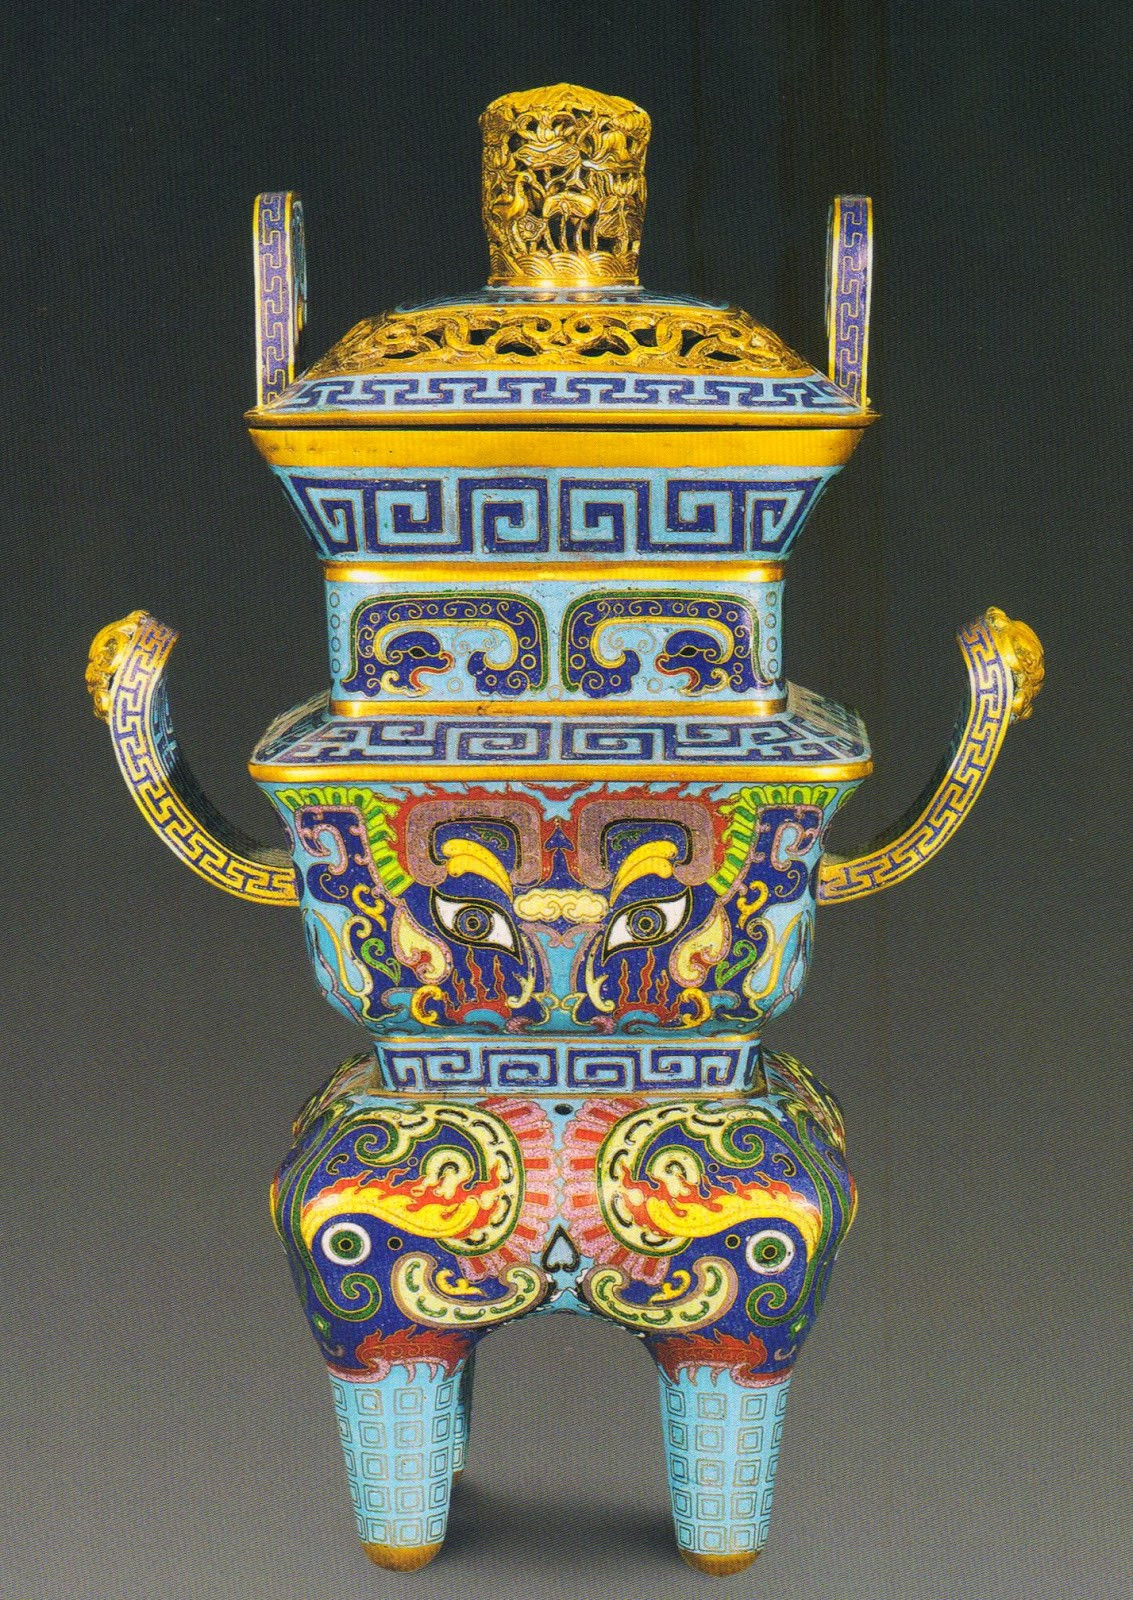 Chinese Cloisonne Vase Of Emperors Antique A Fine and Rare Cloisonne Enamel and Gilt Bronze Regarding Compiled From Sungari 2008 Spring Works Of Art Auctions